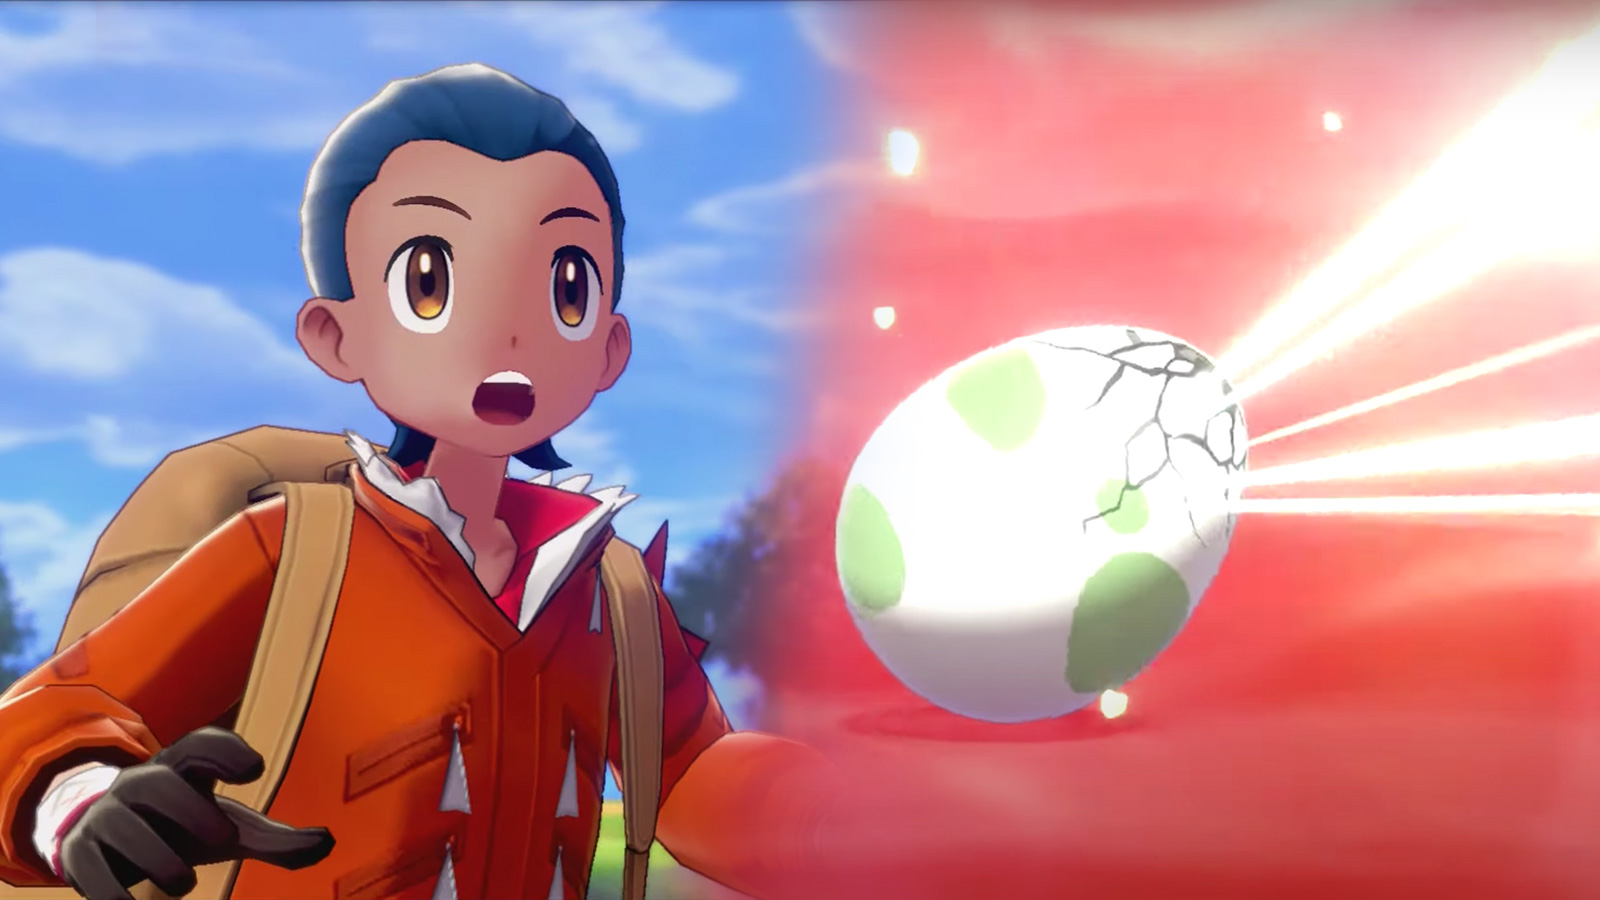 Screenshot of Pokemon Sword & Shield protagonist next to egg hatching.